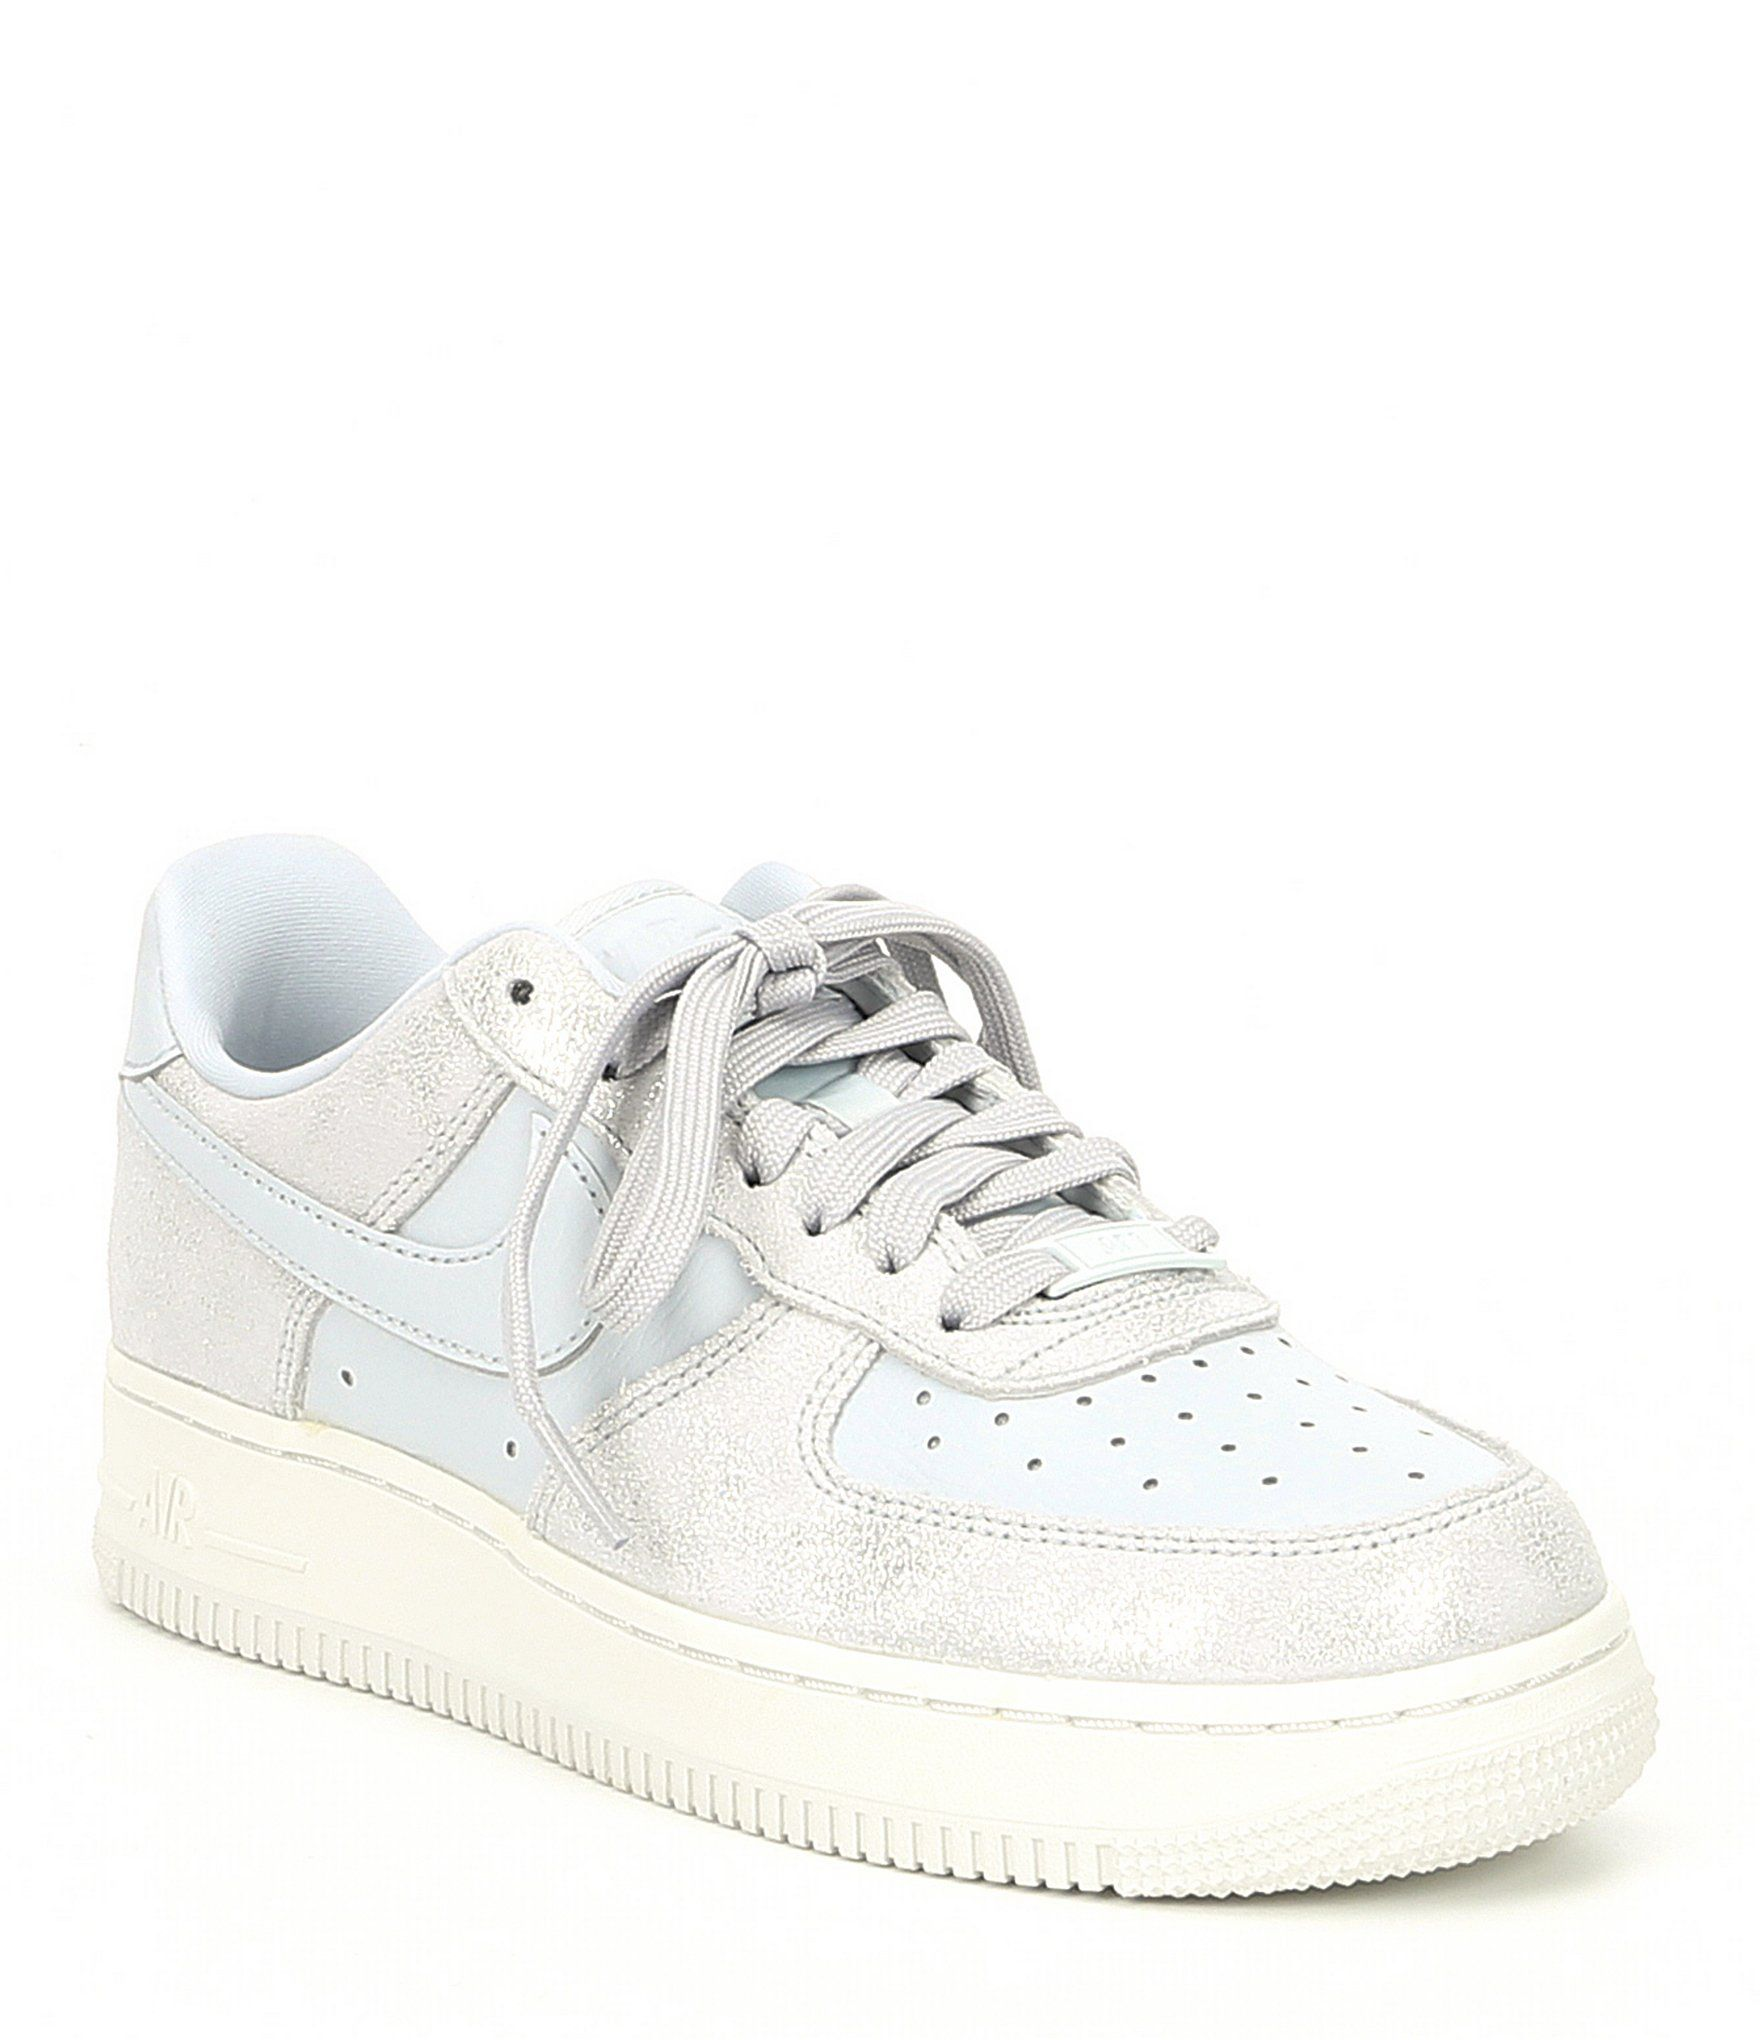 6a42153d160ed Shop for Nike Women s Air Force 1 07 Premium Leather Sneaker at  Dillards.com.